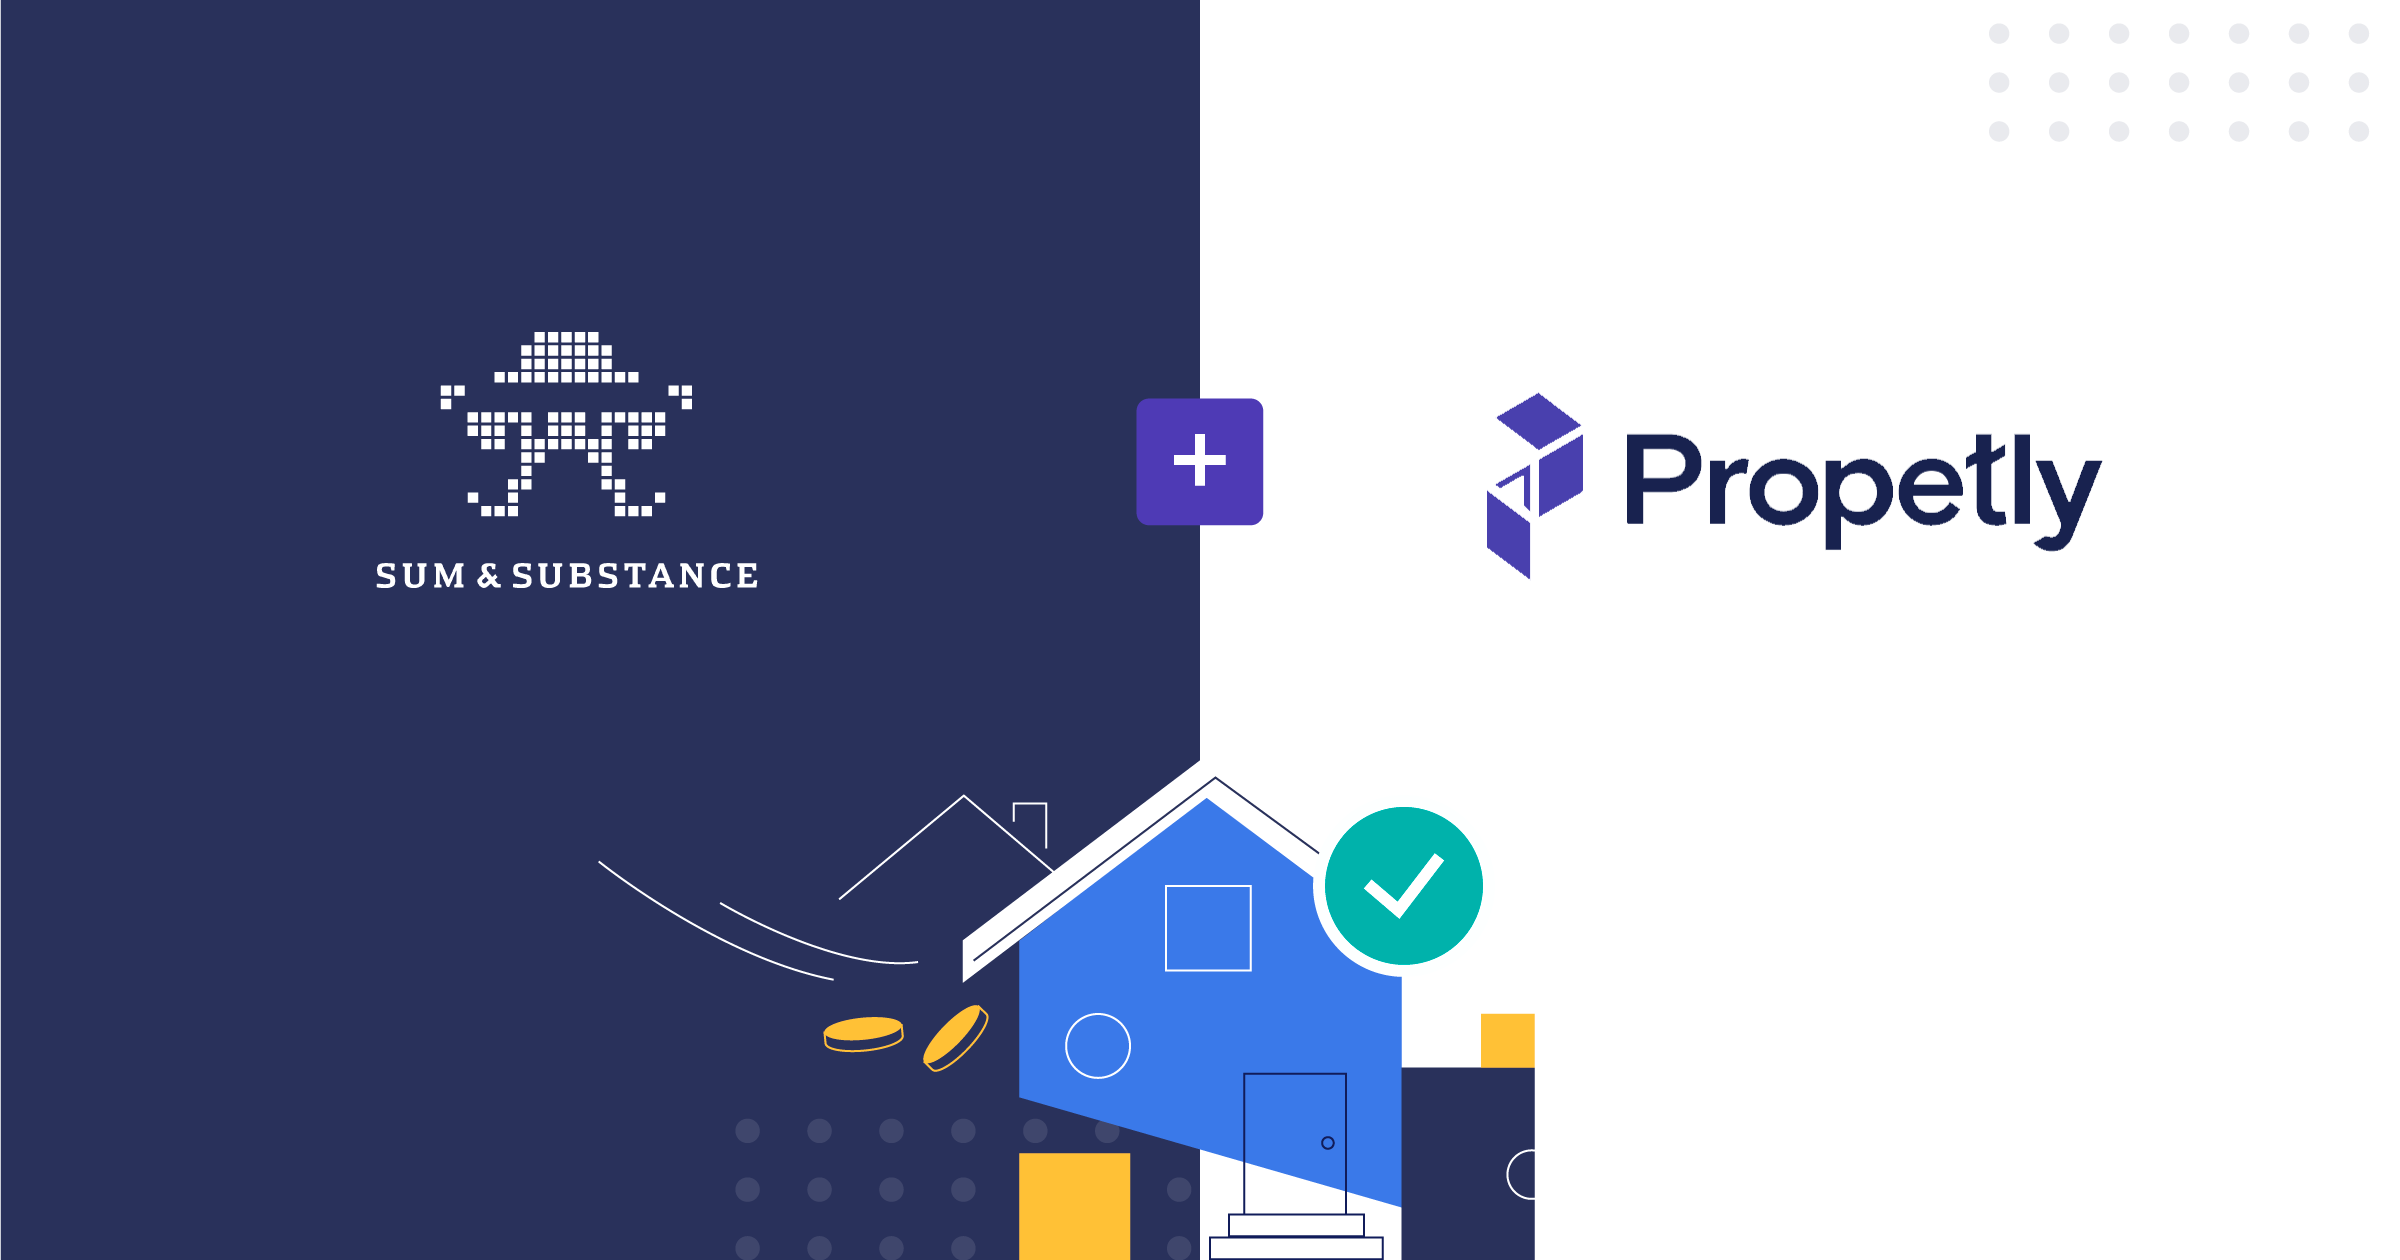 UK-Based Propetly Partners With Sumsub to Automate a Property Investment Market That Hasn't Changed for 30 Years